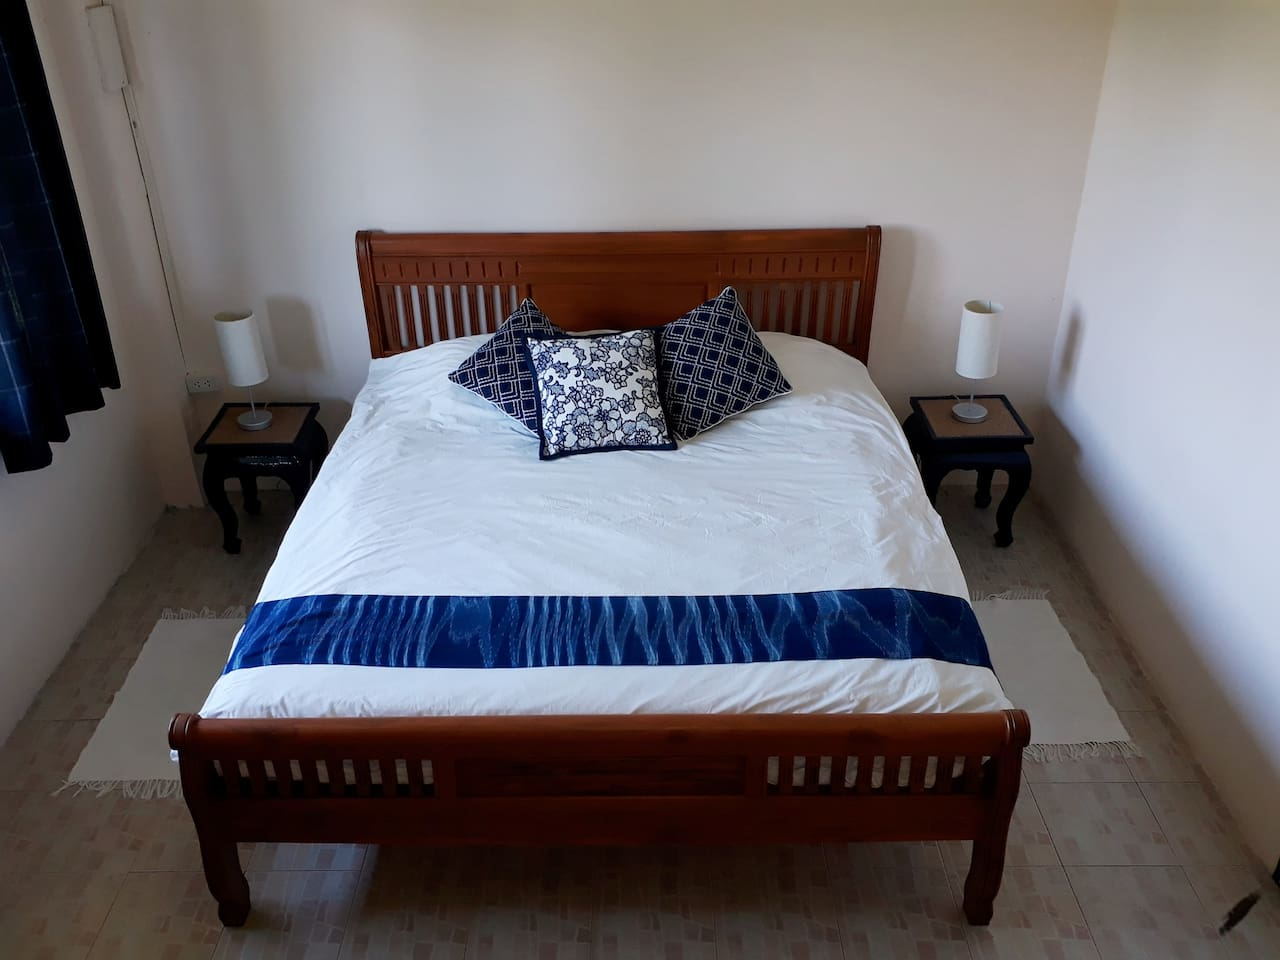 Our large bedroom with a king-size bed has a writing desk and cabinet for clothes too.